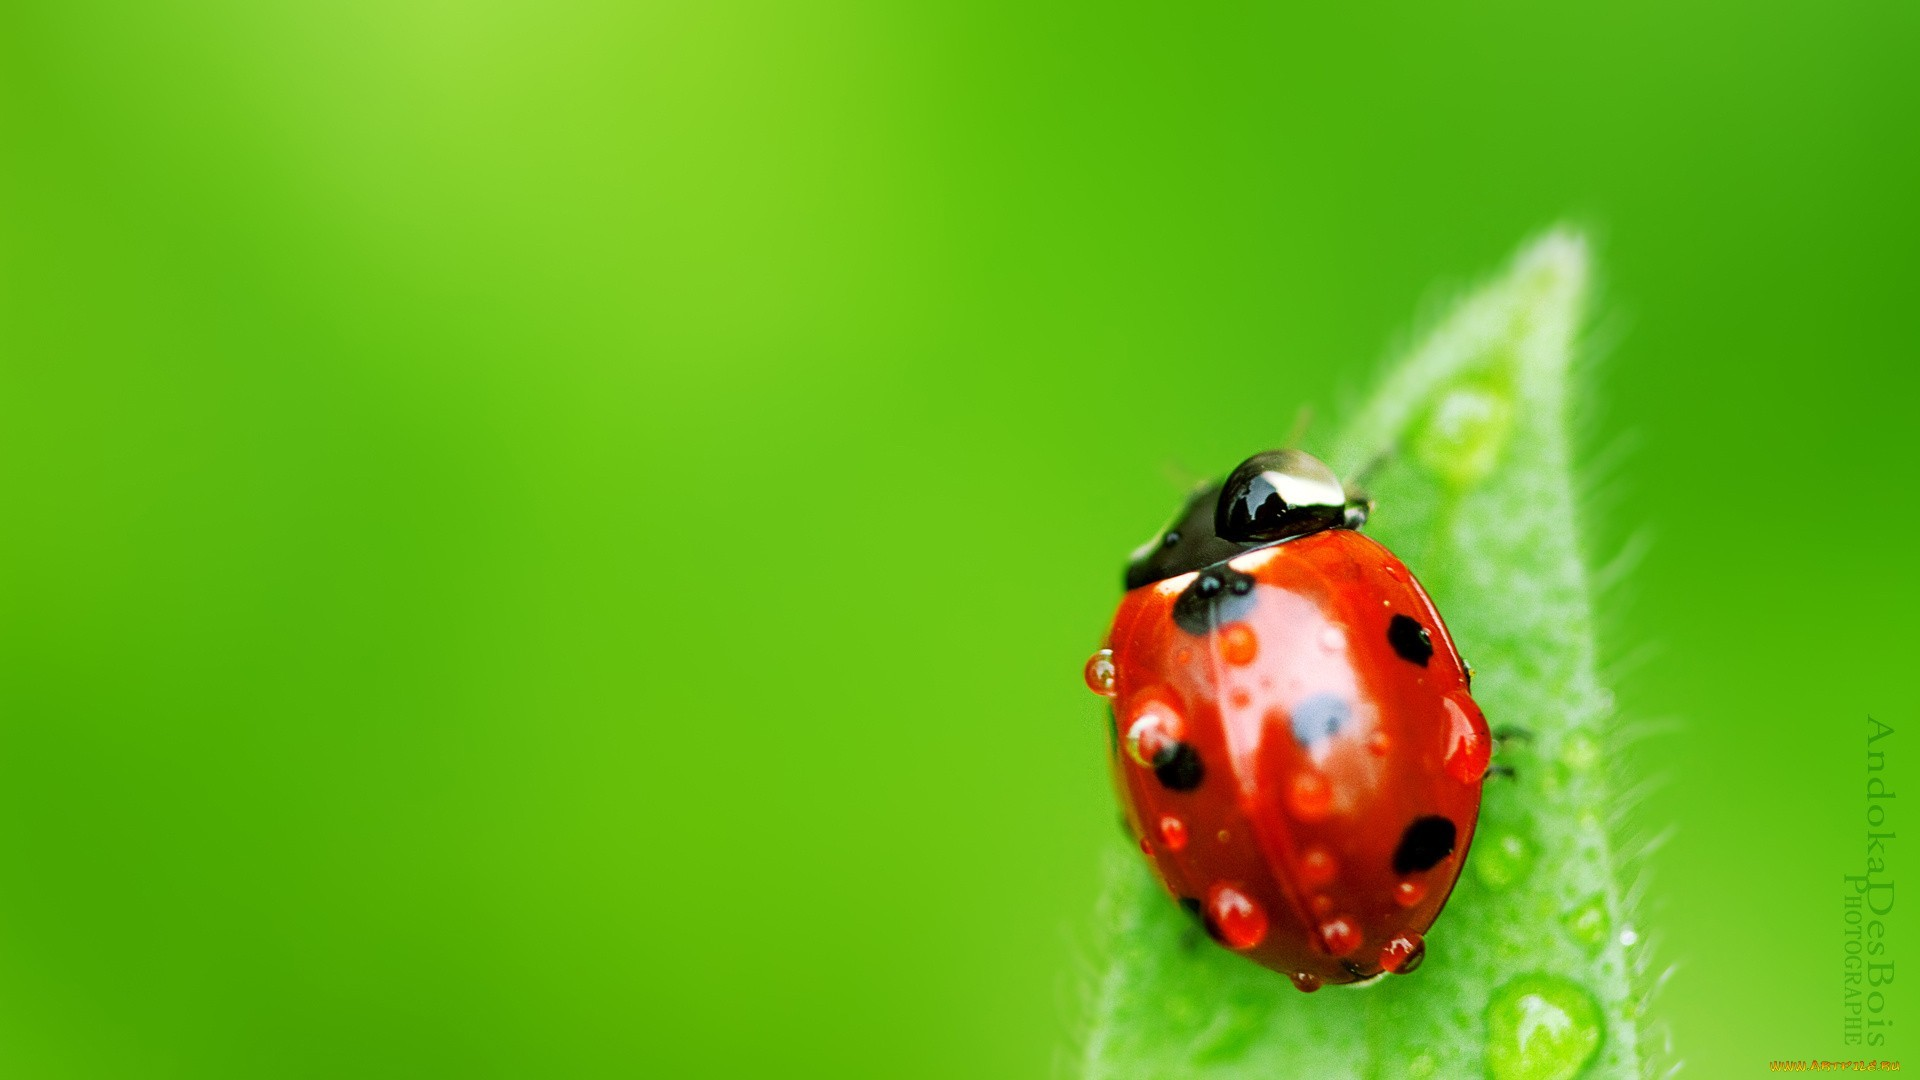 14721 download wallpaper Insects, Ladybugs screensavers and pictures for free